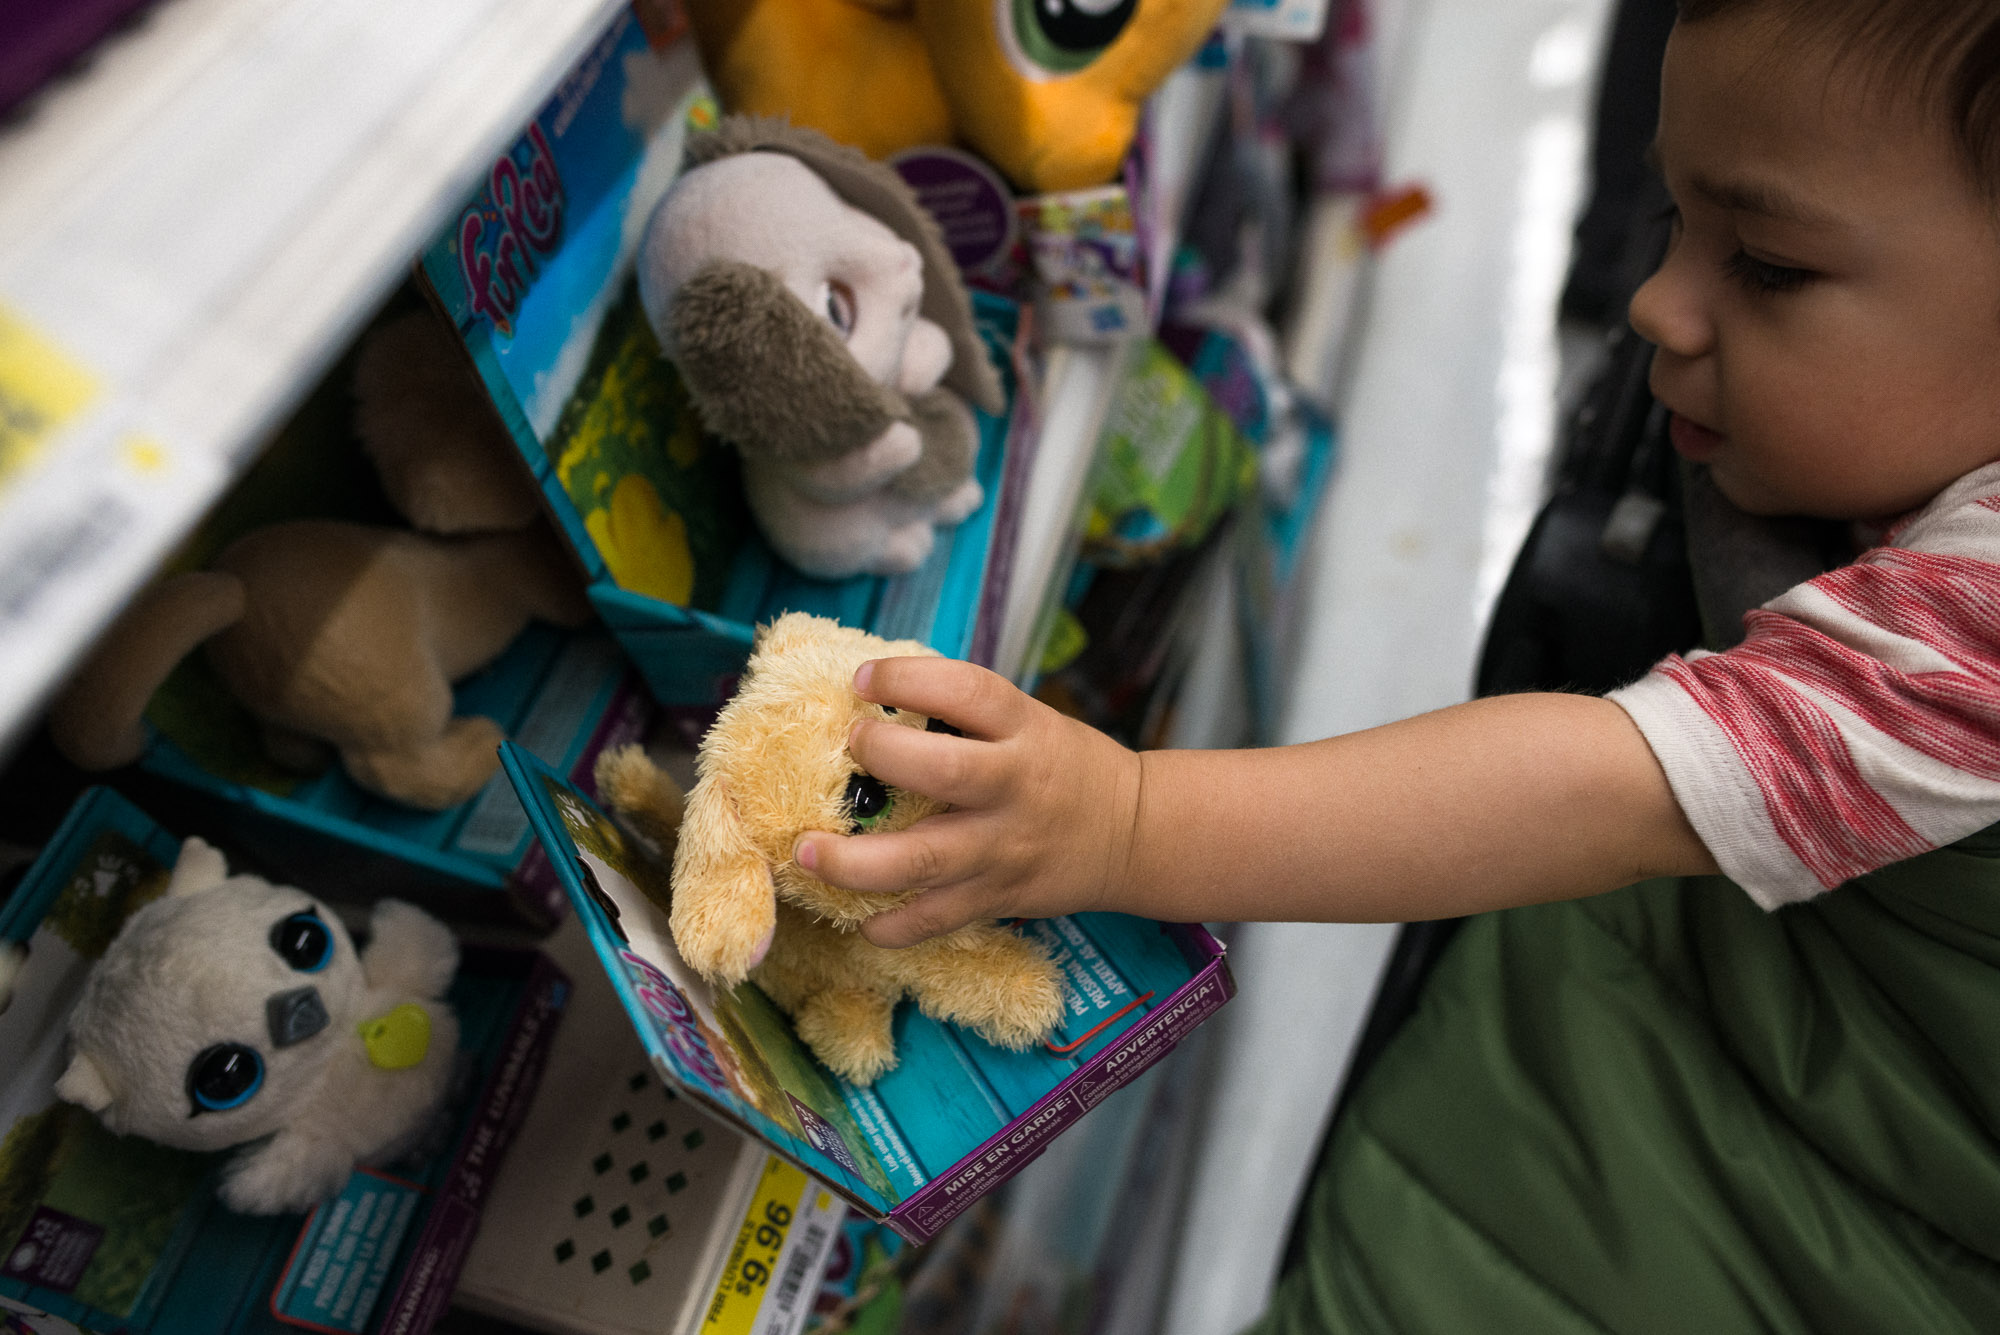 toddler grabs toy of the shelf while in stroller